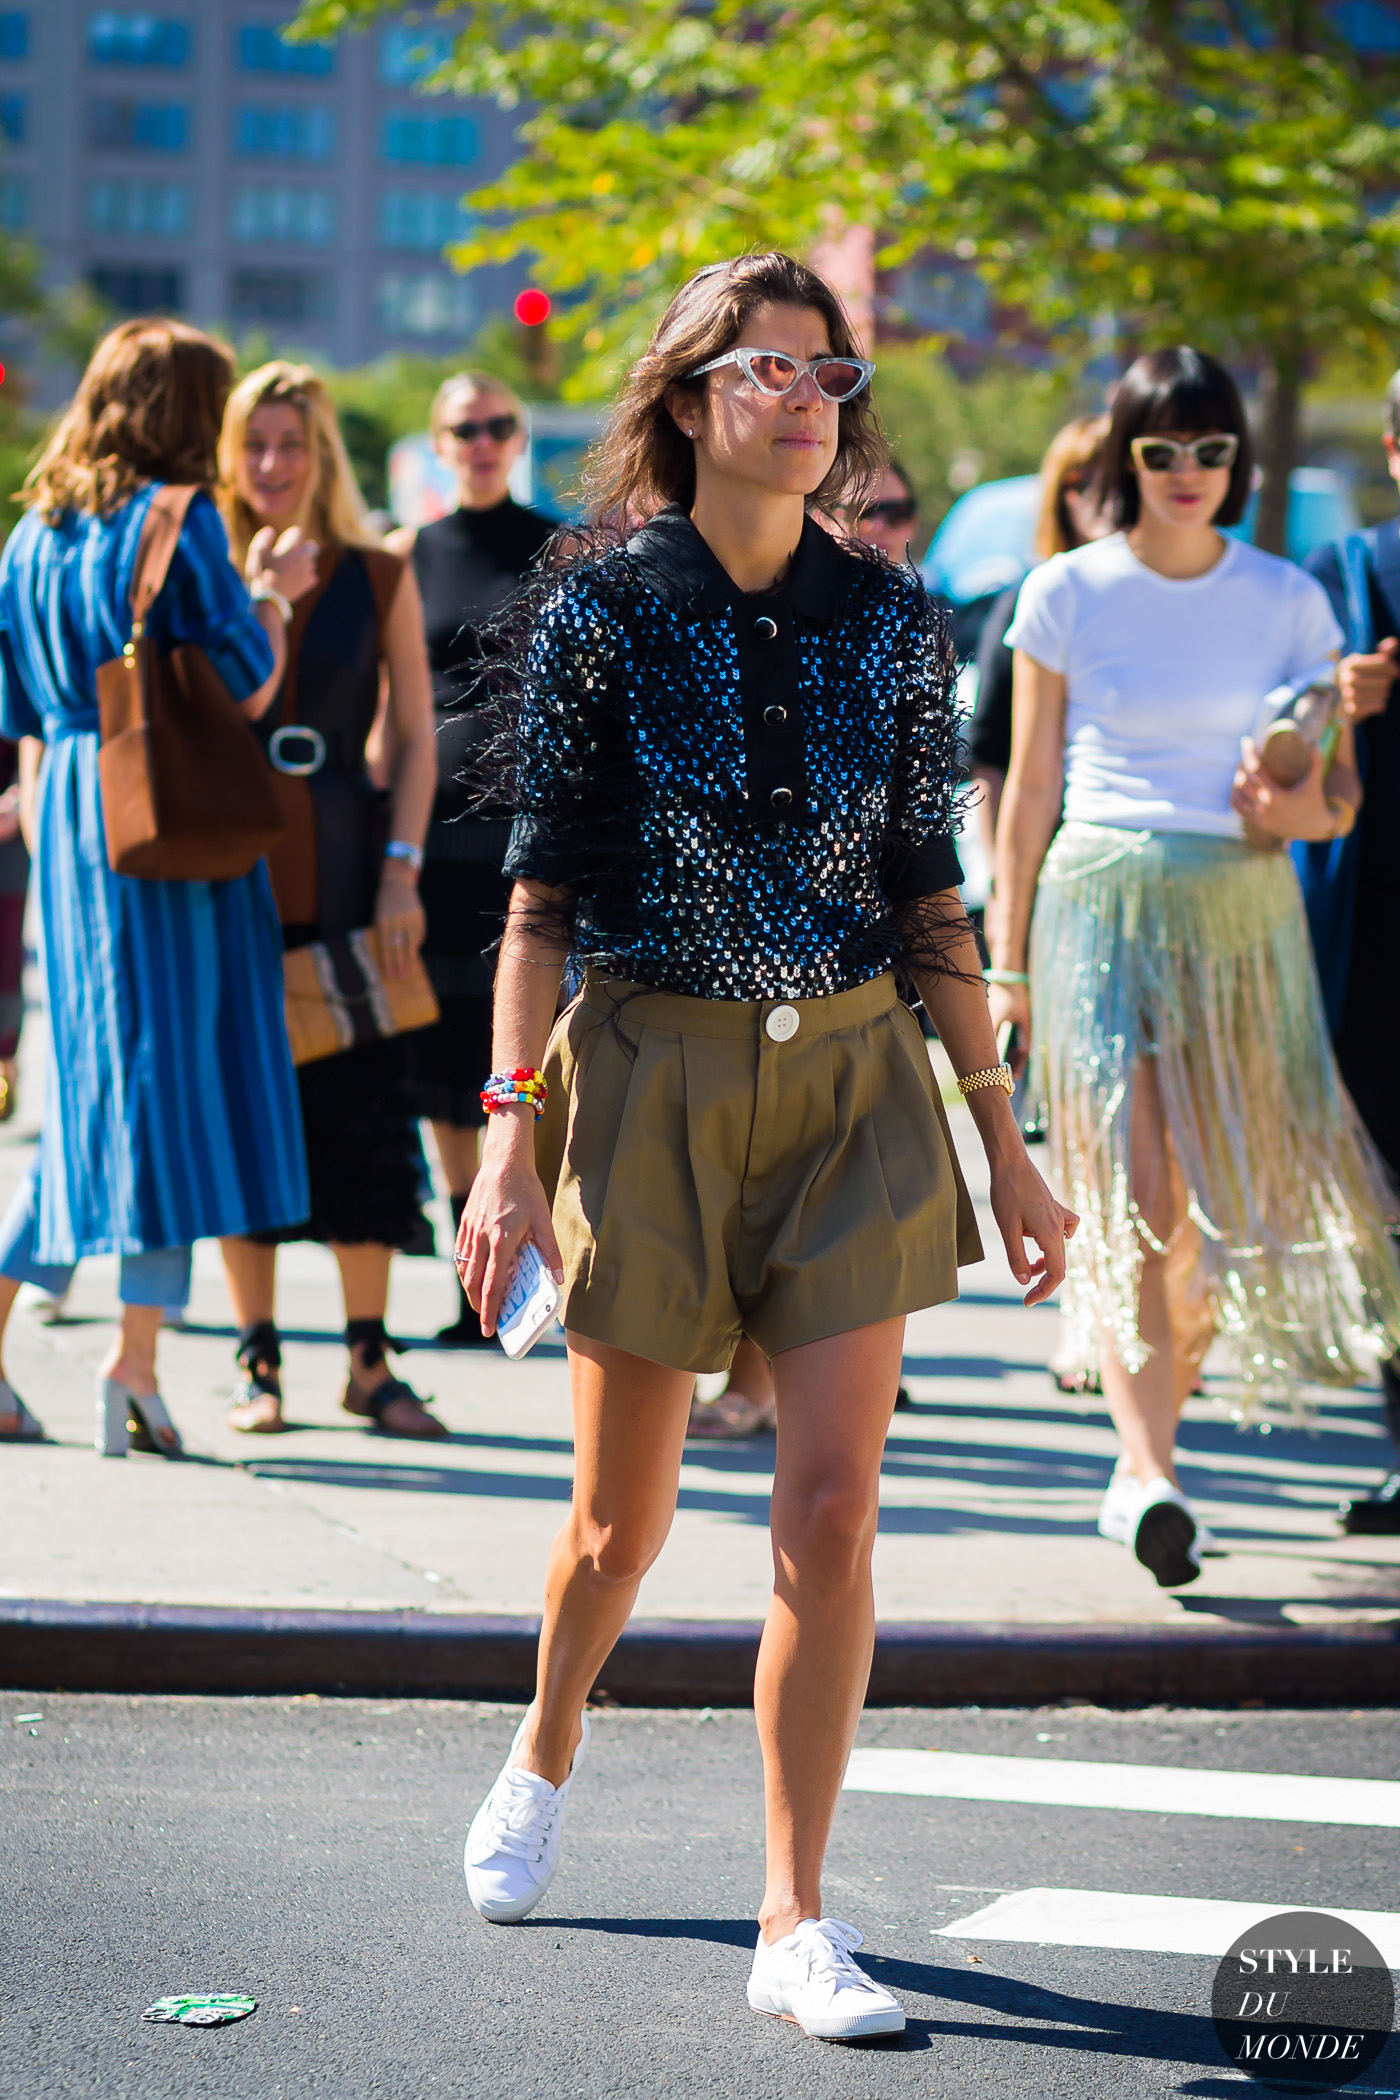 Leandra Medine Man Repeller by STYLEDUMONDE Street Style Fashion Photography